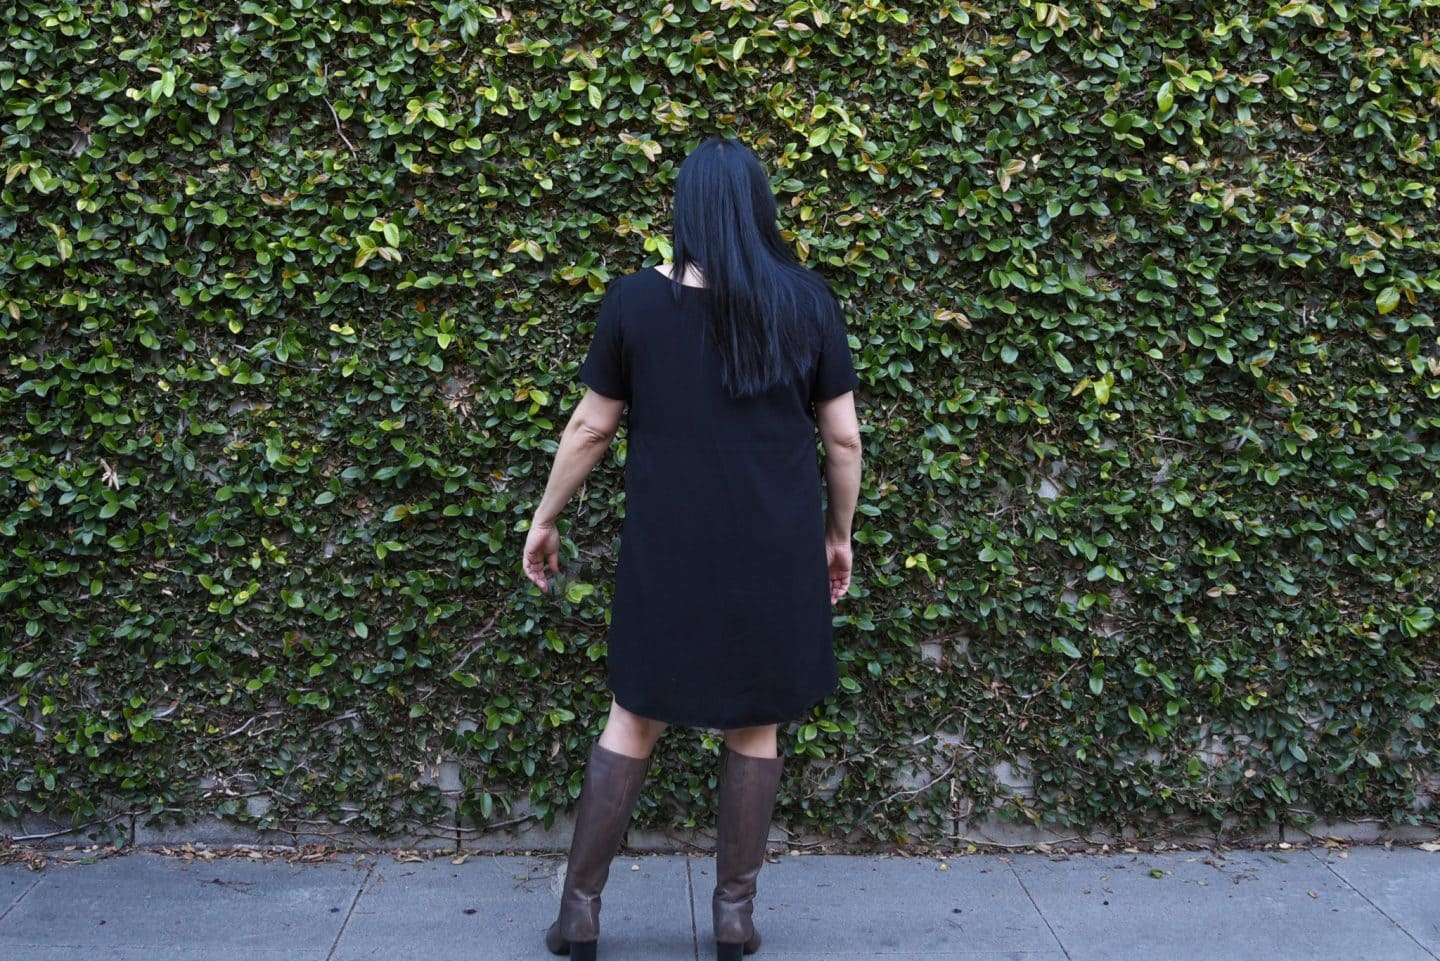 Image of woman with long black hair with her back to the camera facing a wall covered in wines wearing a black rayon dress and gray boots